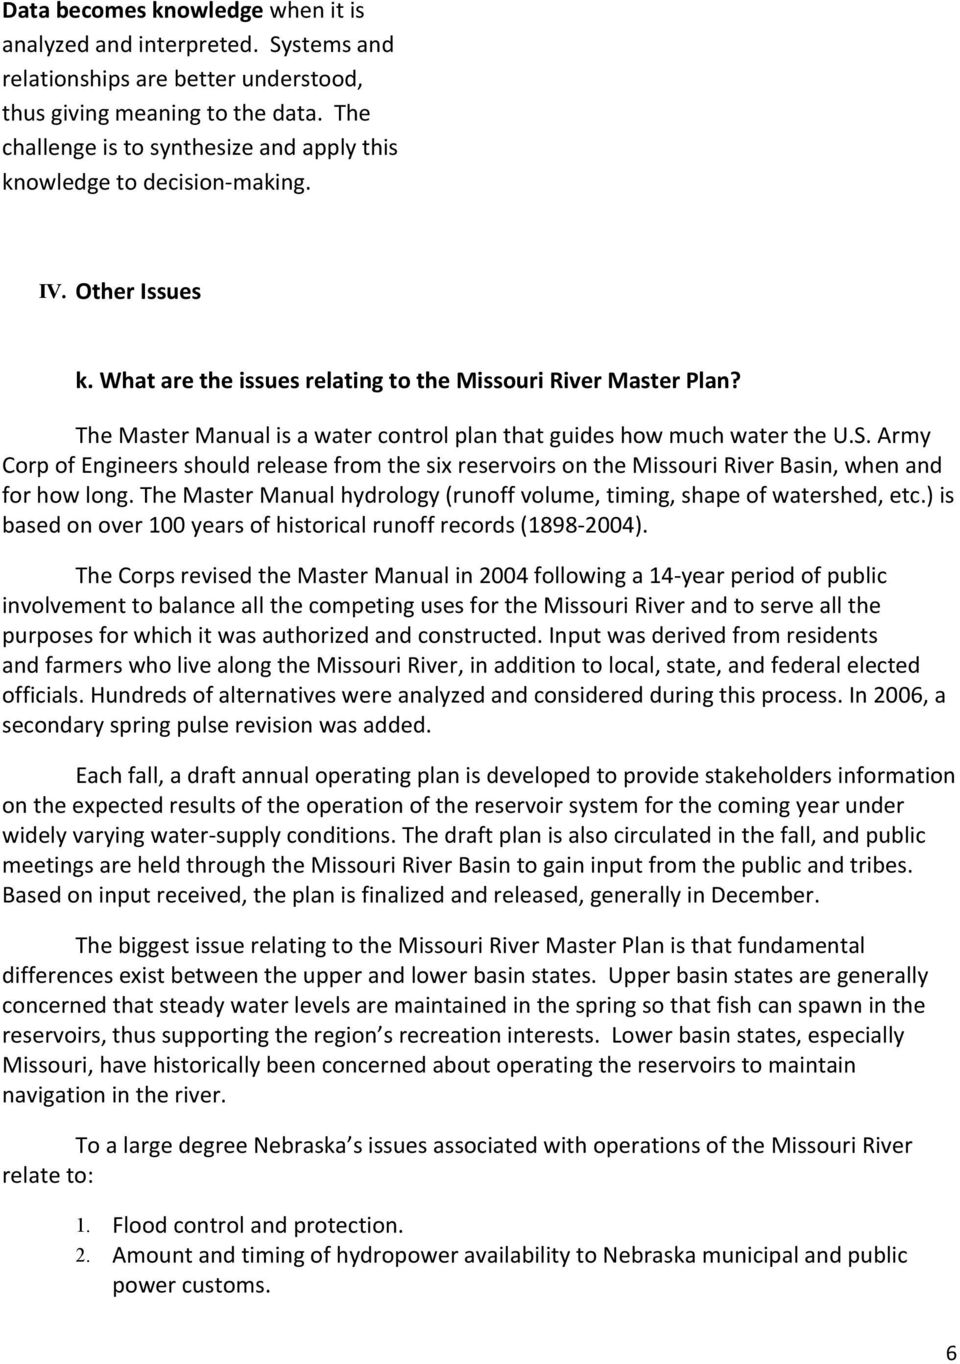 The Master Manual is a water control plan that guides how much water the U.S. Army Corp of Engineers should release from the six reservoirs on the Missouri River Basin, when and for how long.